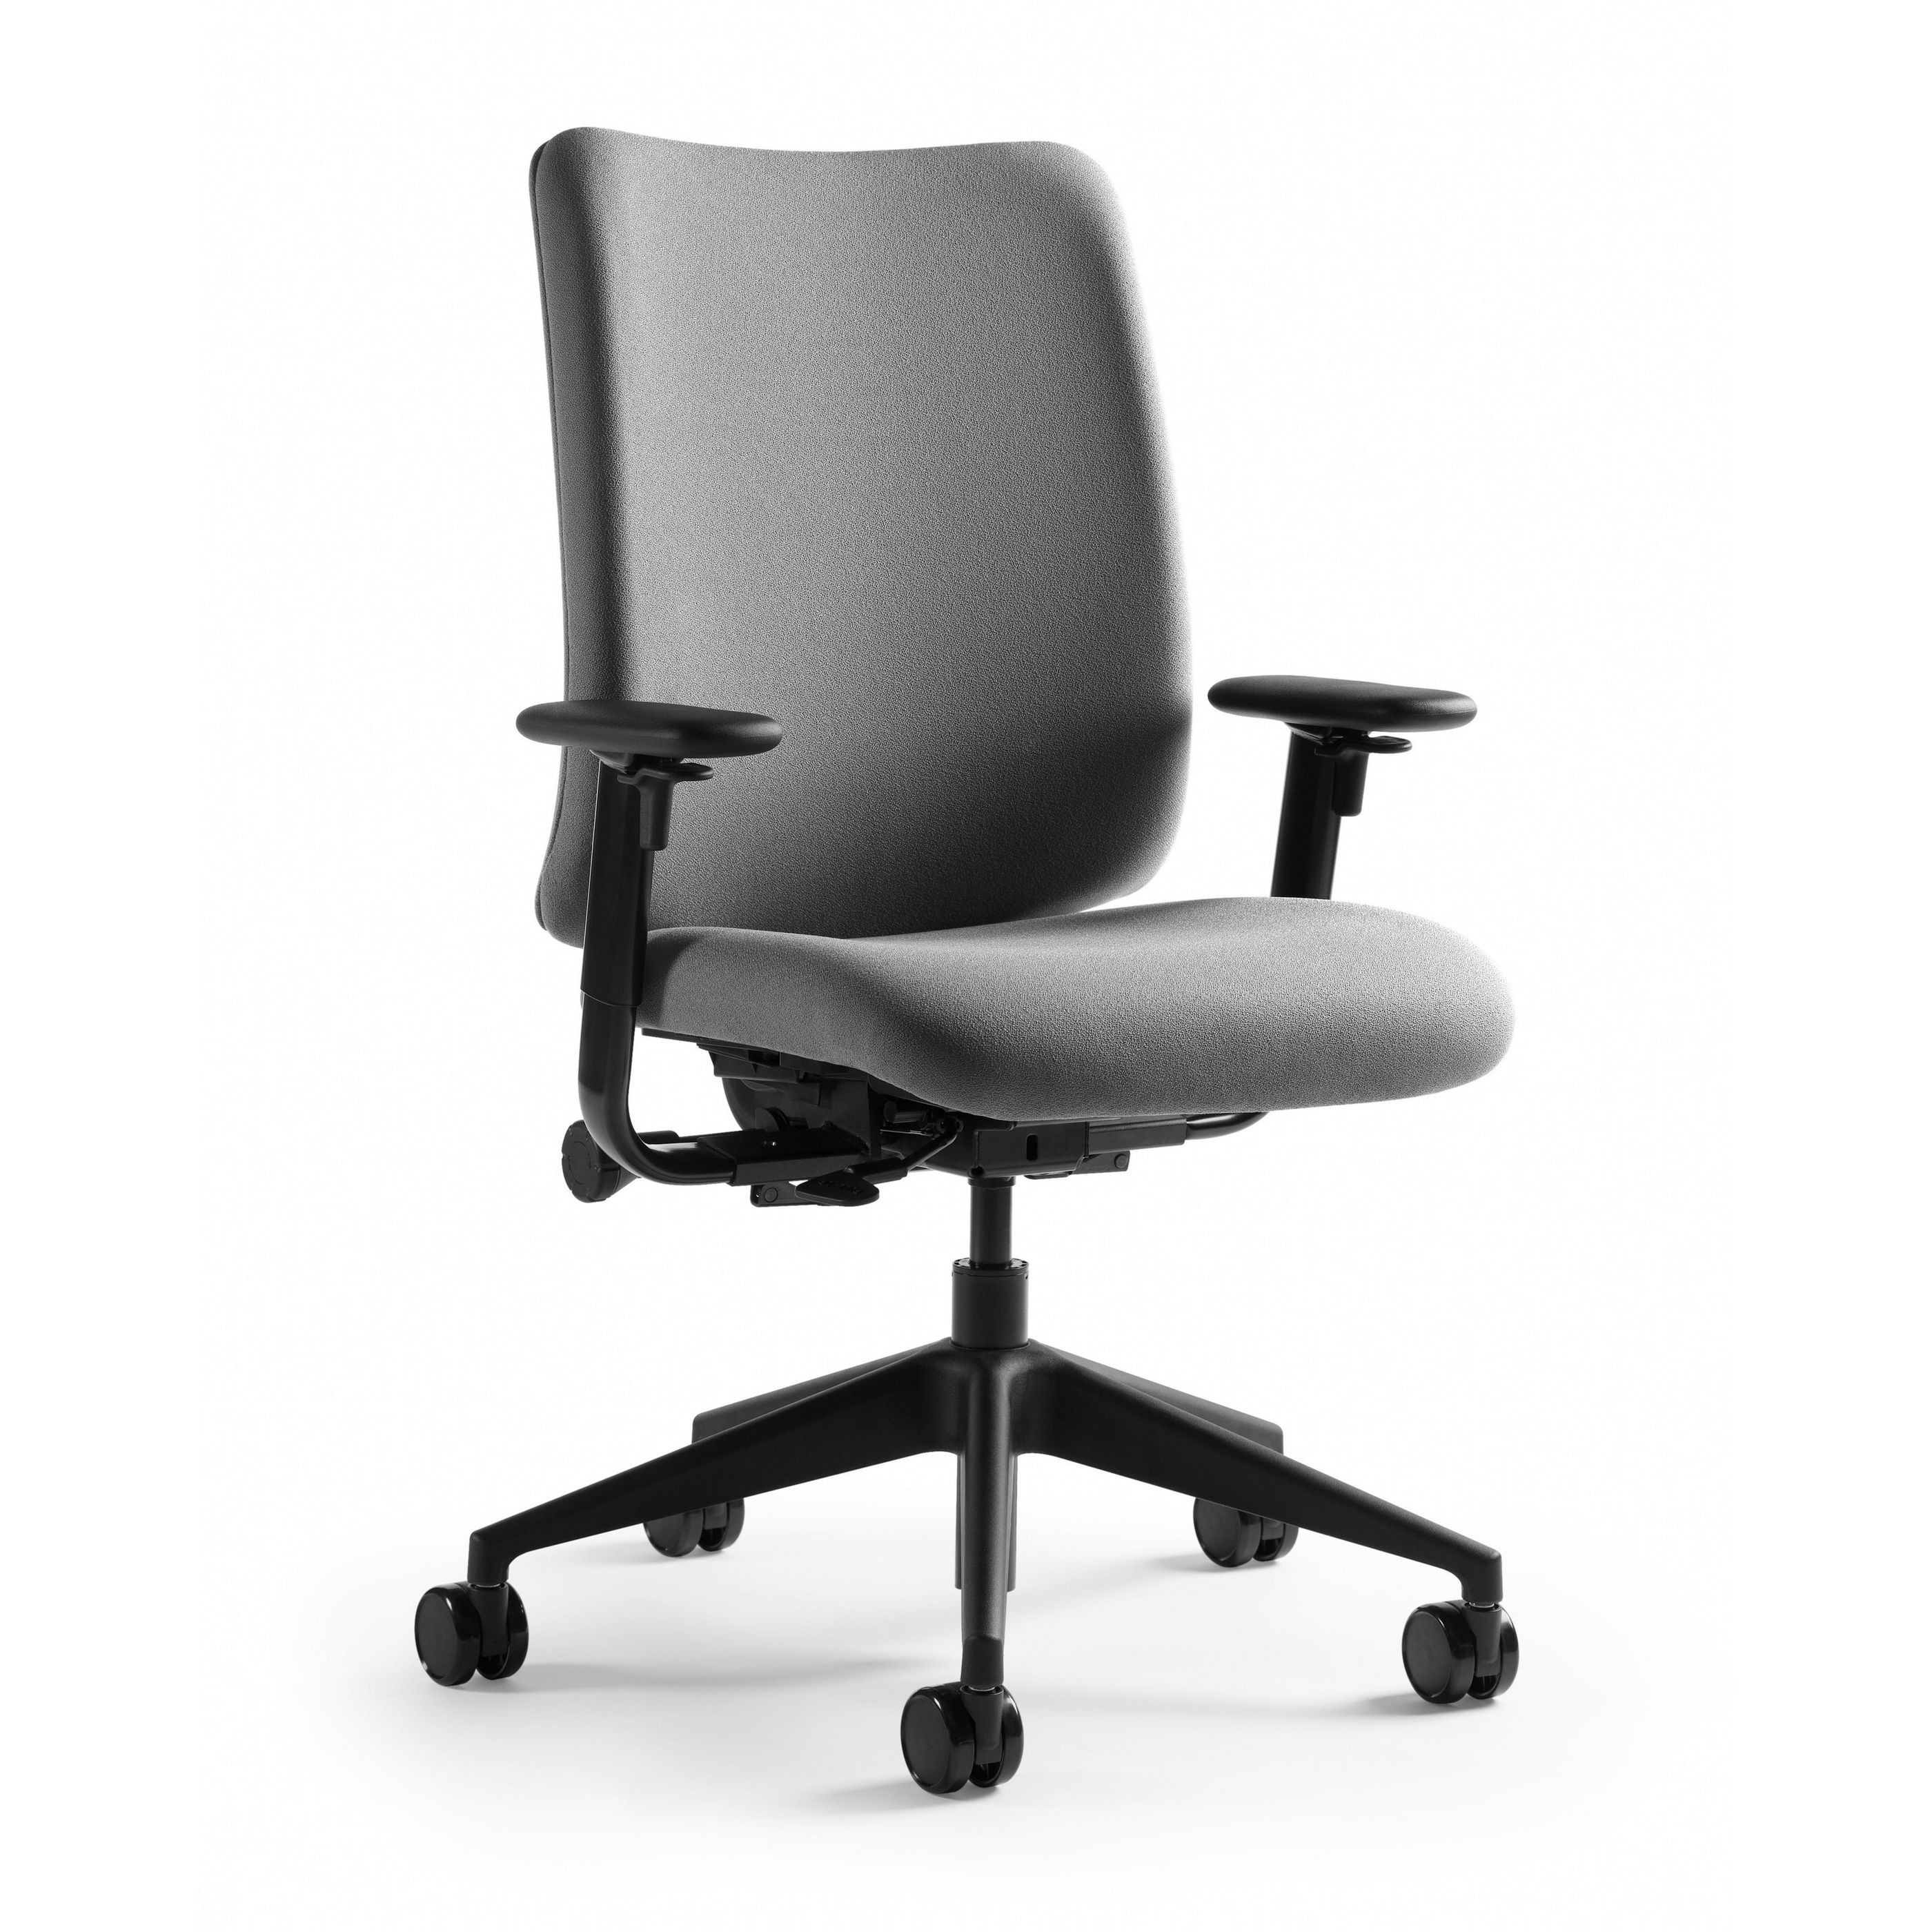 Steelcase Crew Chairs Crew Chairs By Steelcase The